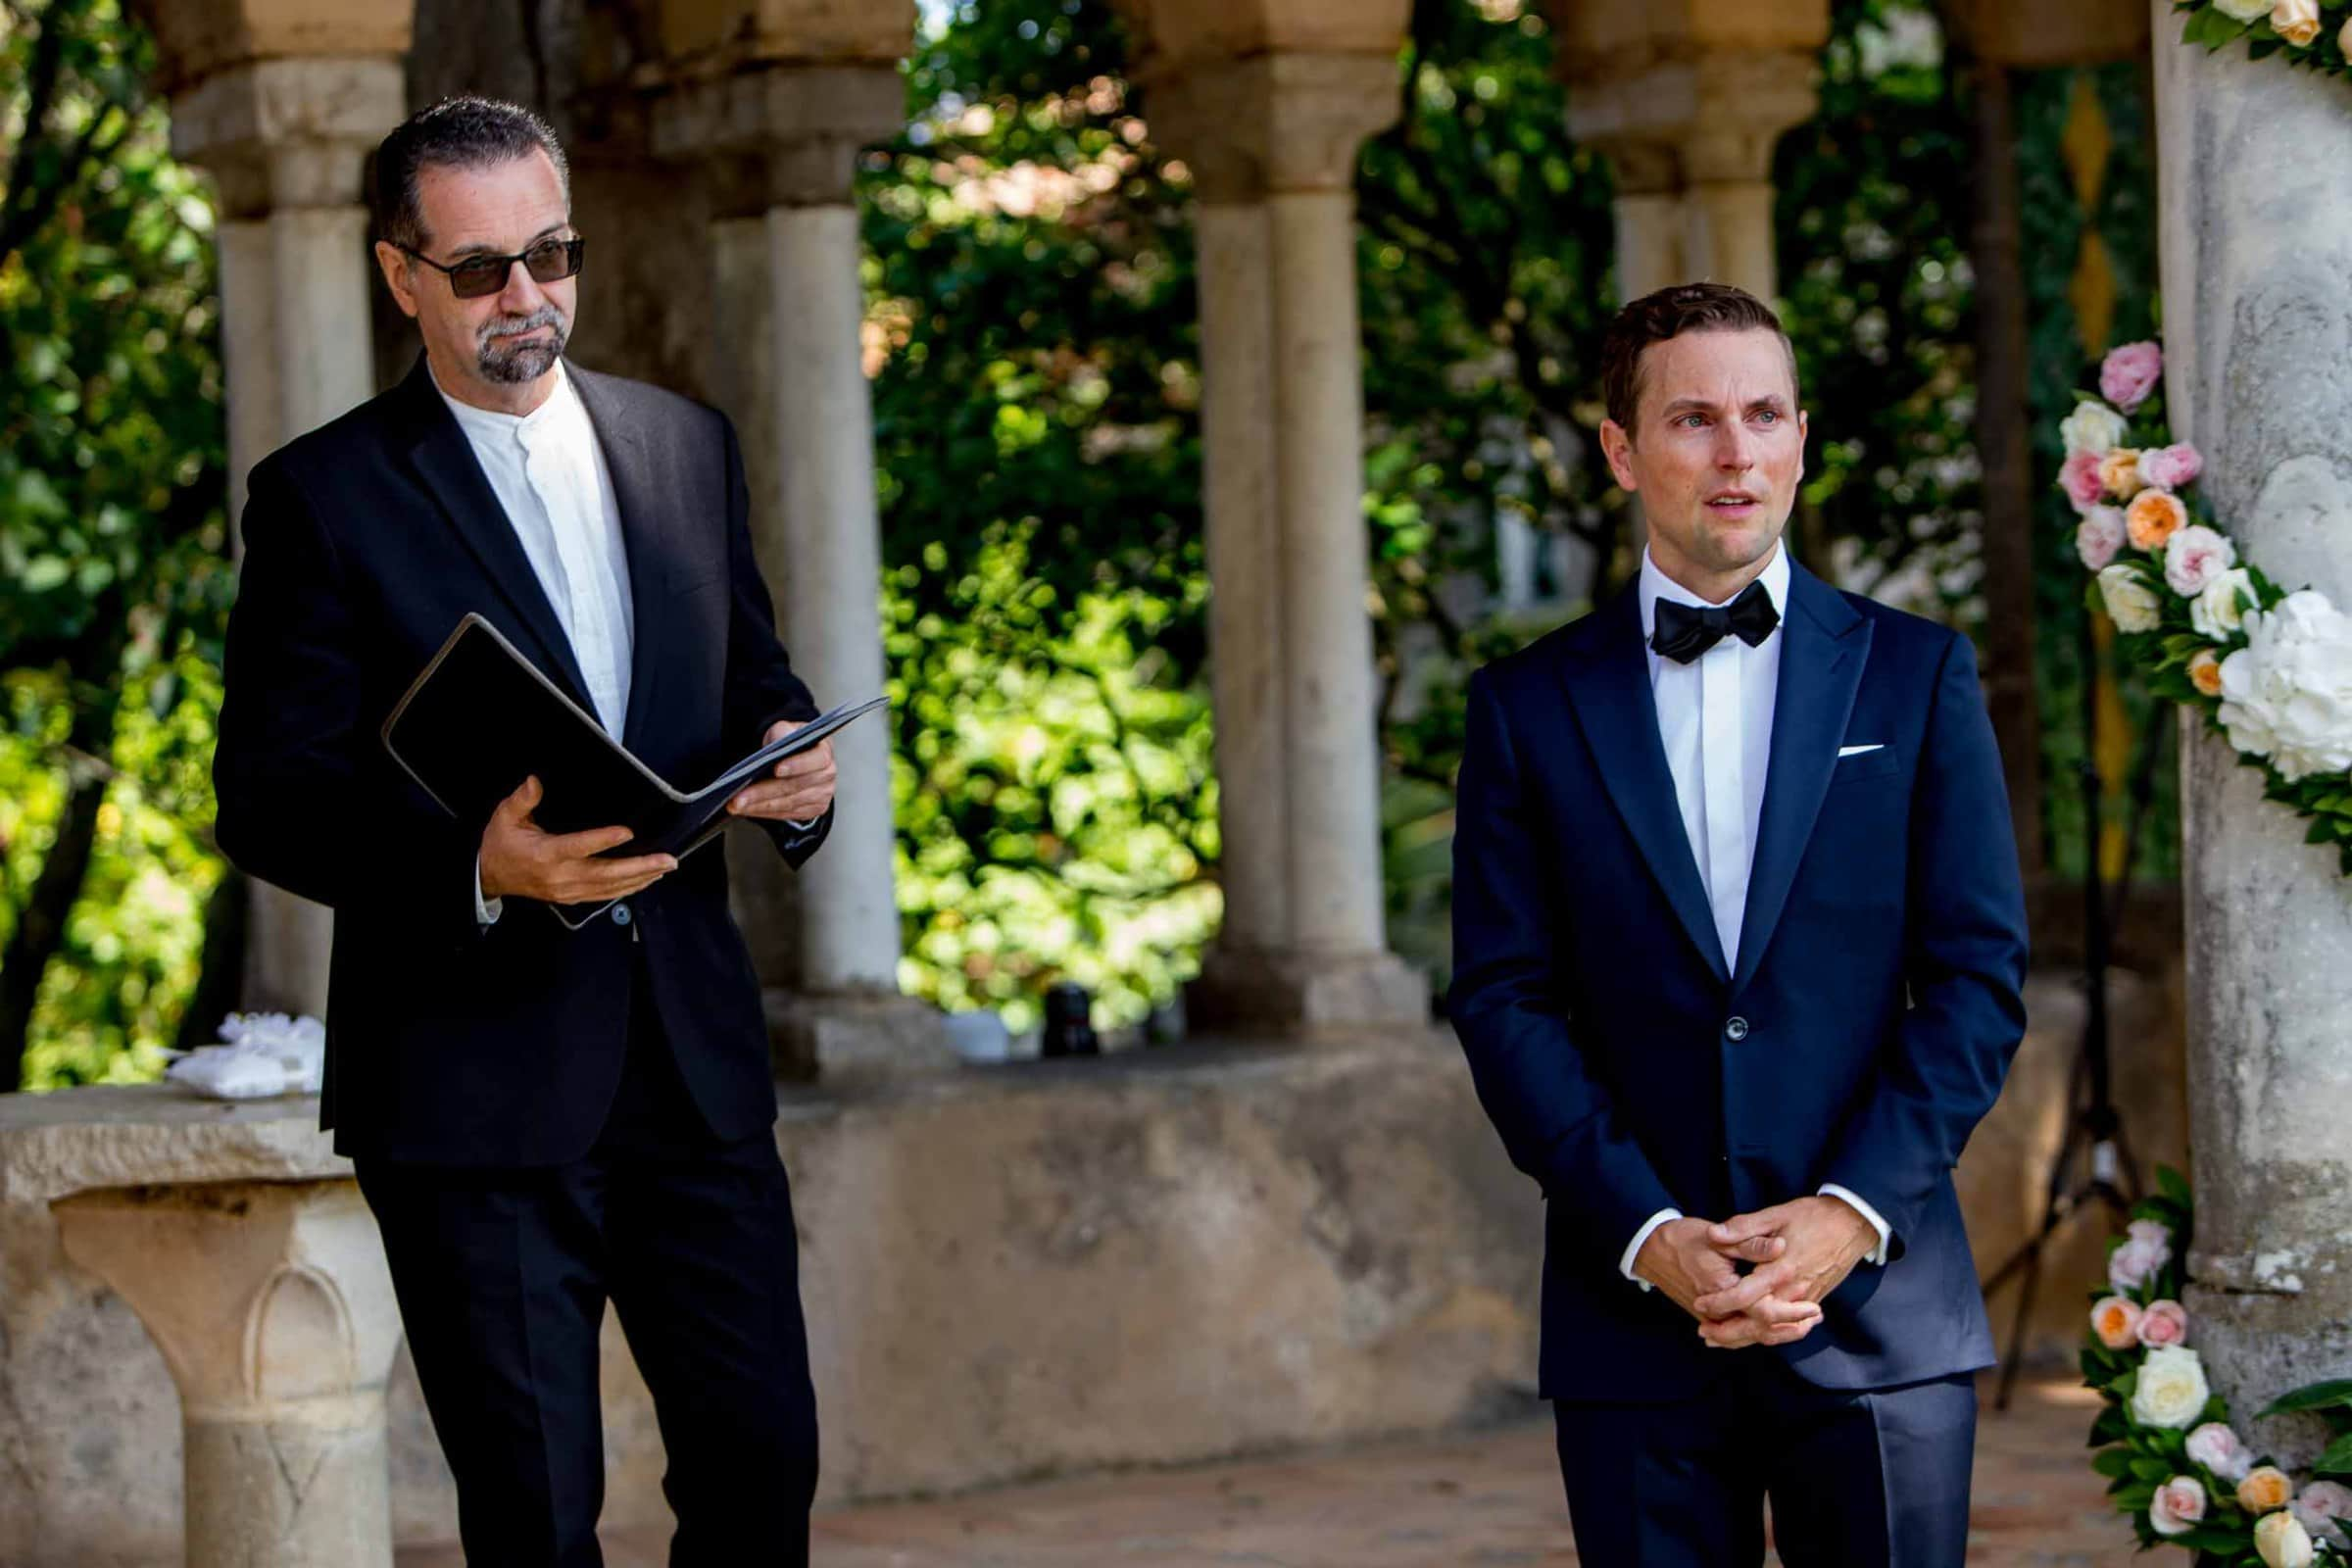 Emotional groom seeing his bride for the first time during their Ravello elopement ceremony at Villa Cimbrone in Amalfi, Italy